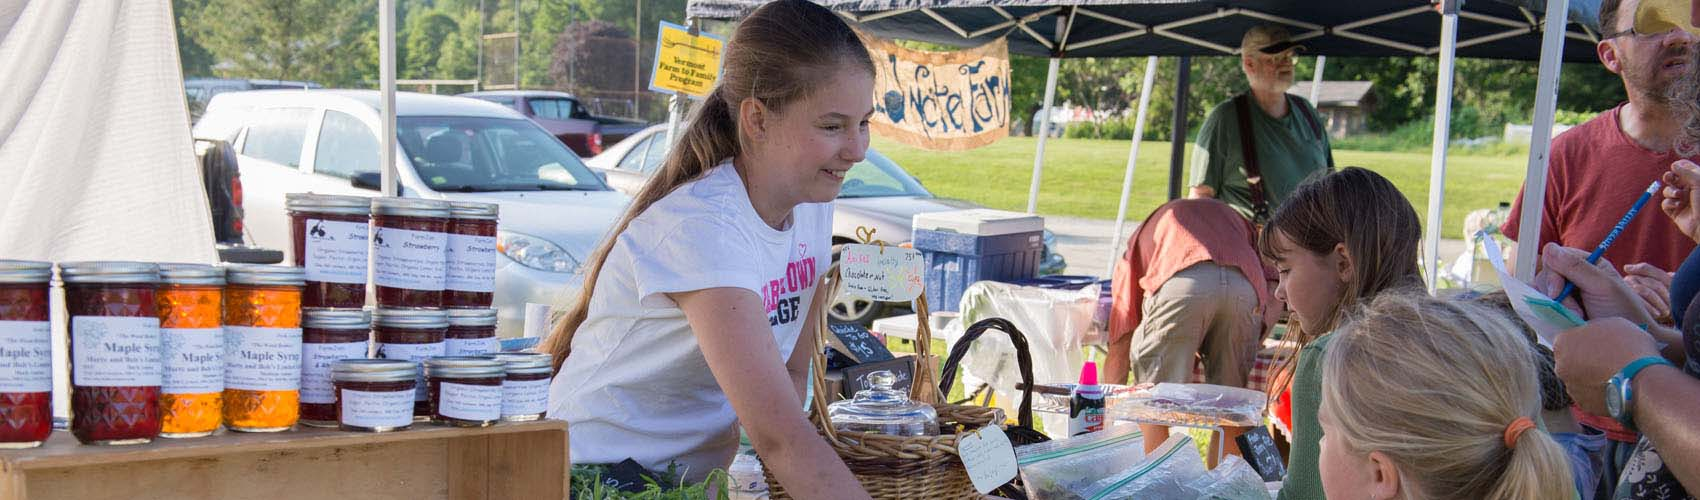 Hartland-Farmers-Market-July-2015-Molly-Drummond-banner